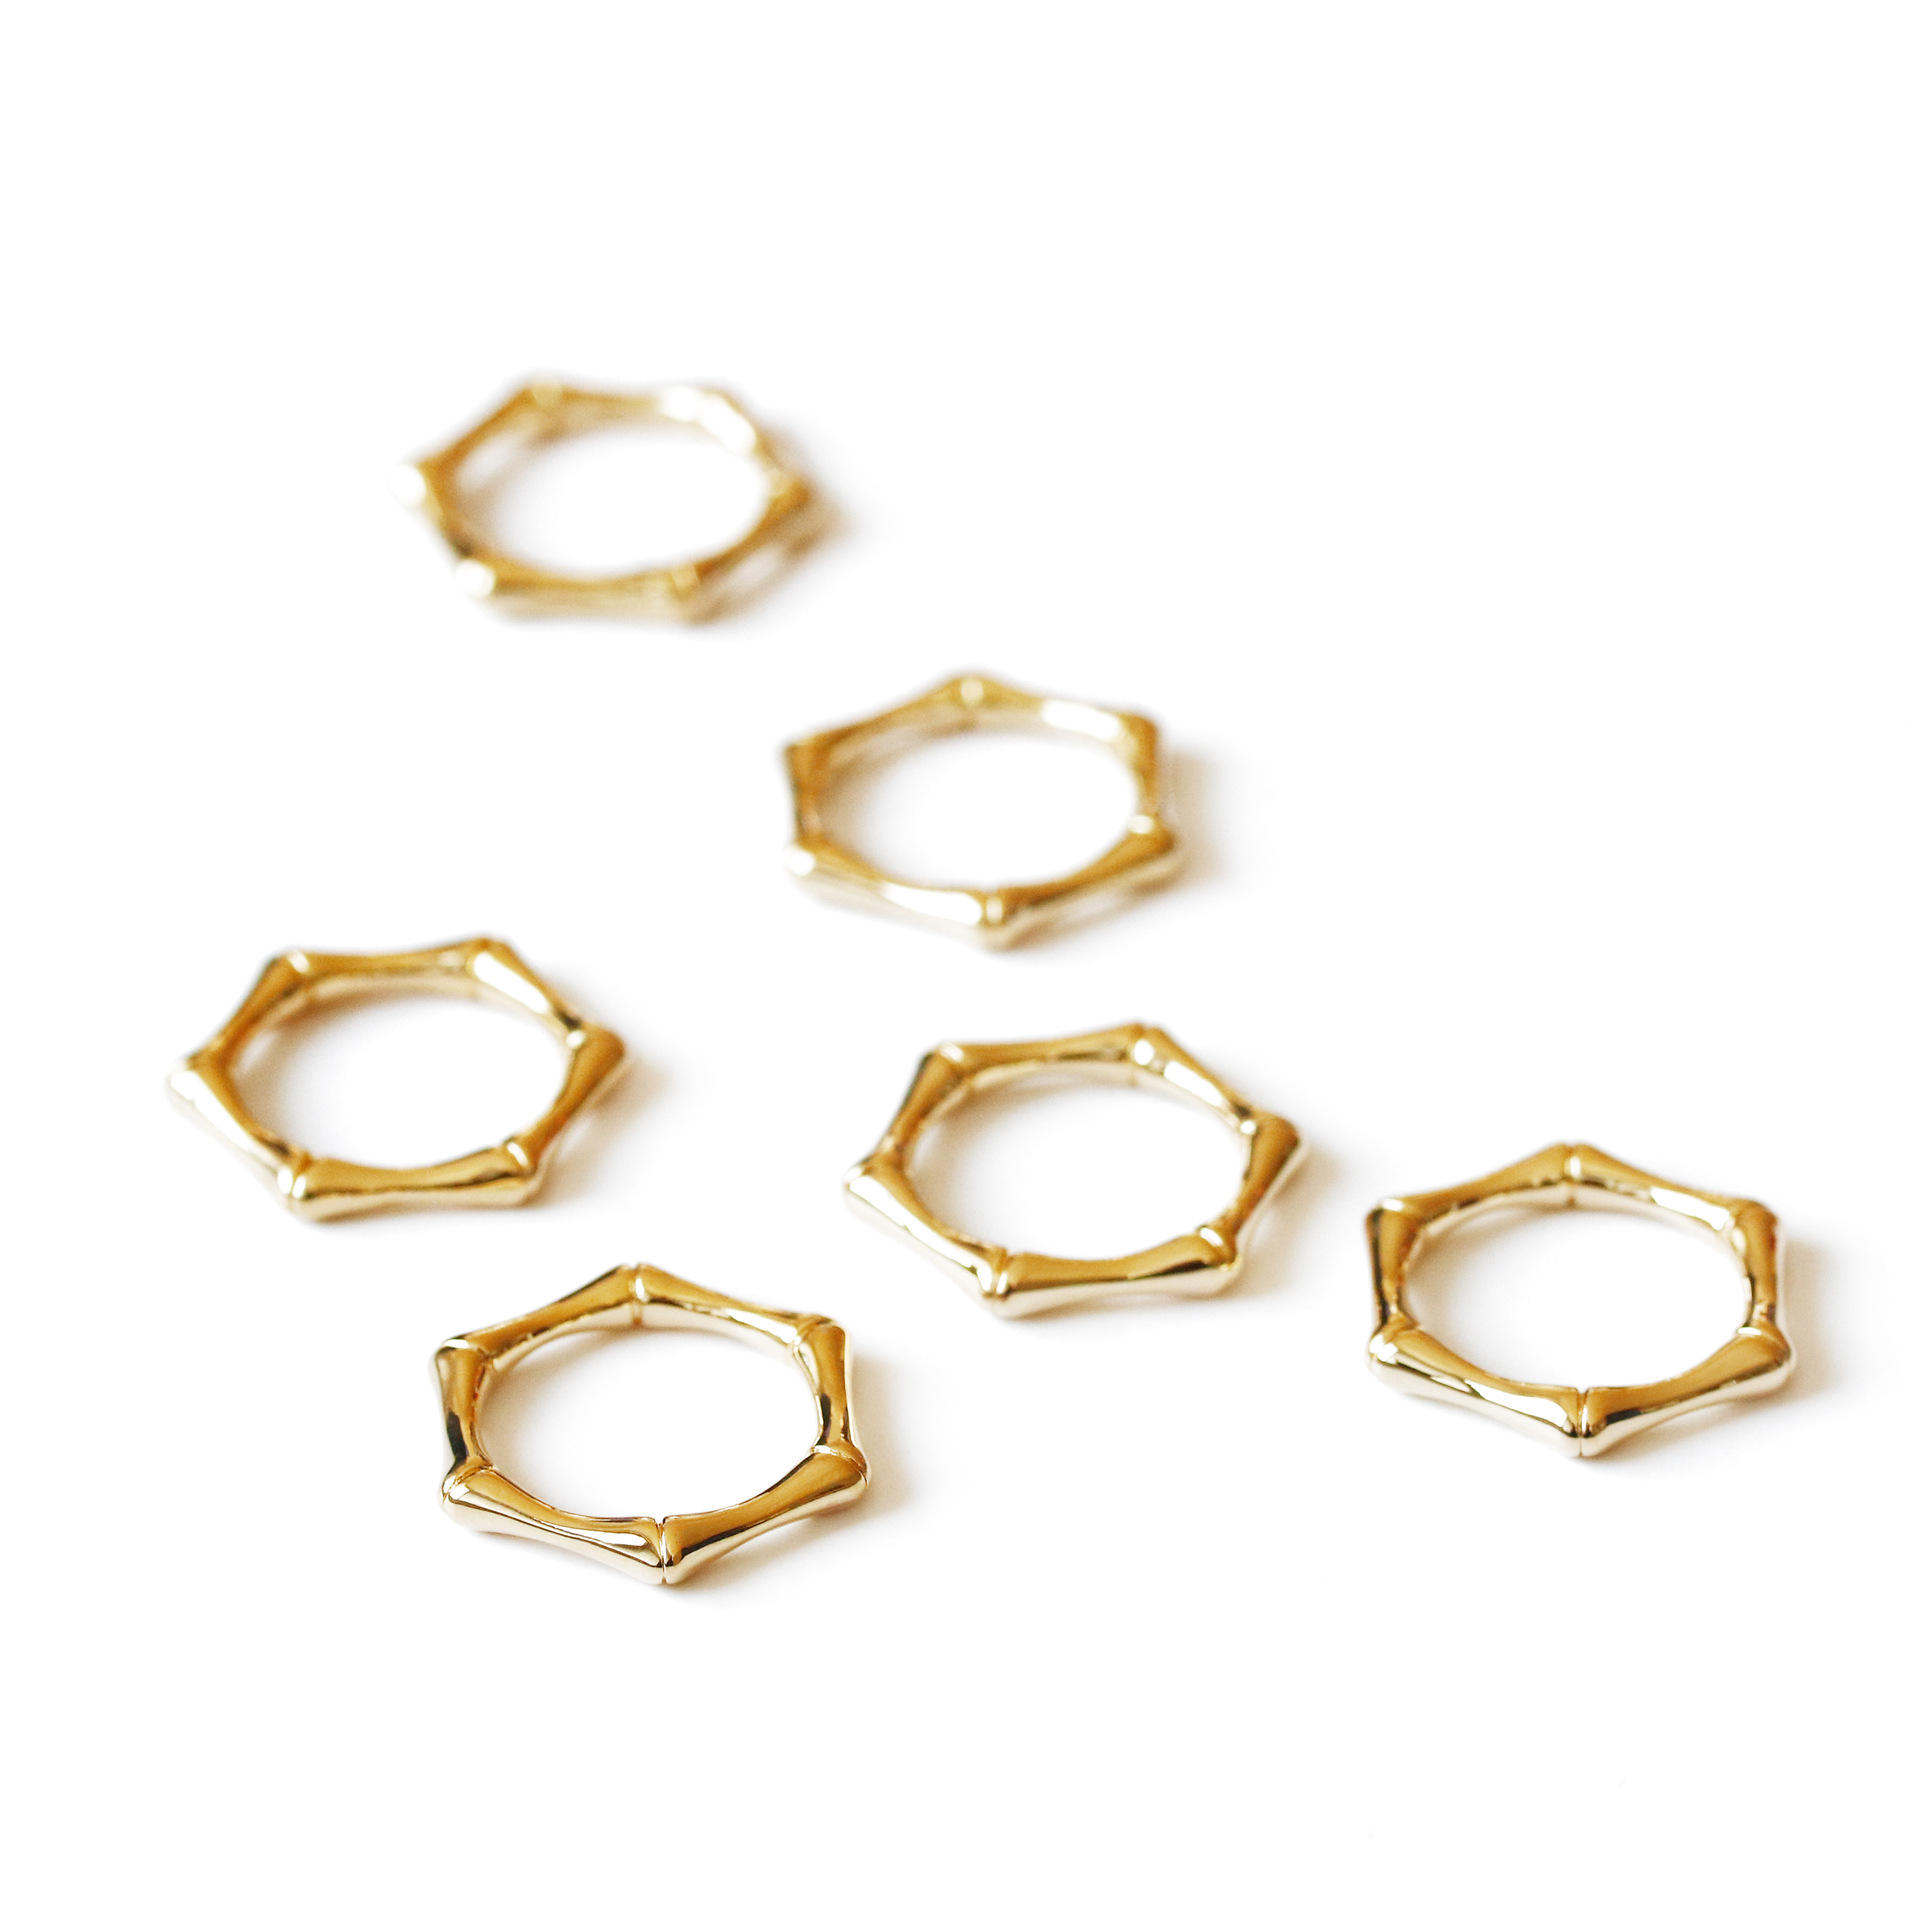 Hexagonal Bamboo Ring Simple Temperament Brass Gold Plated Chic Fashion Women Ring